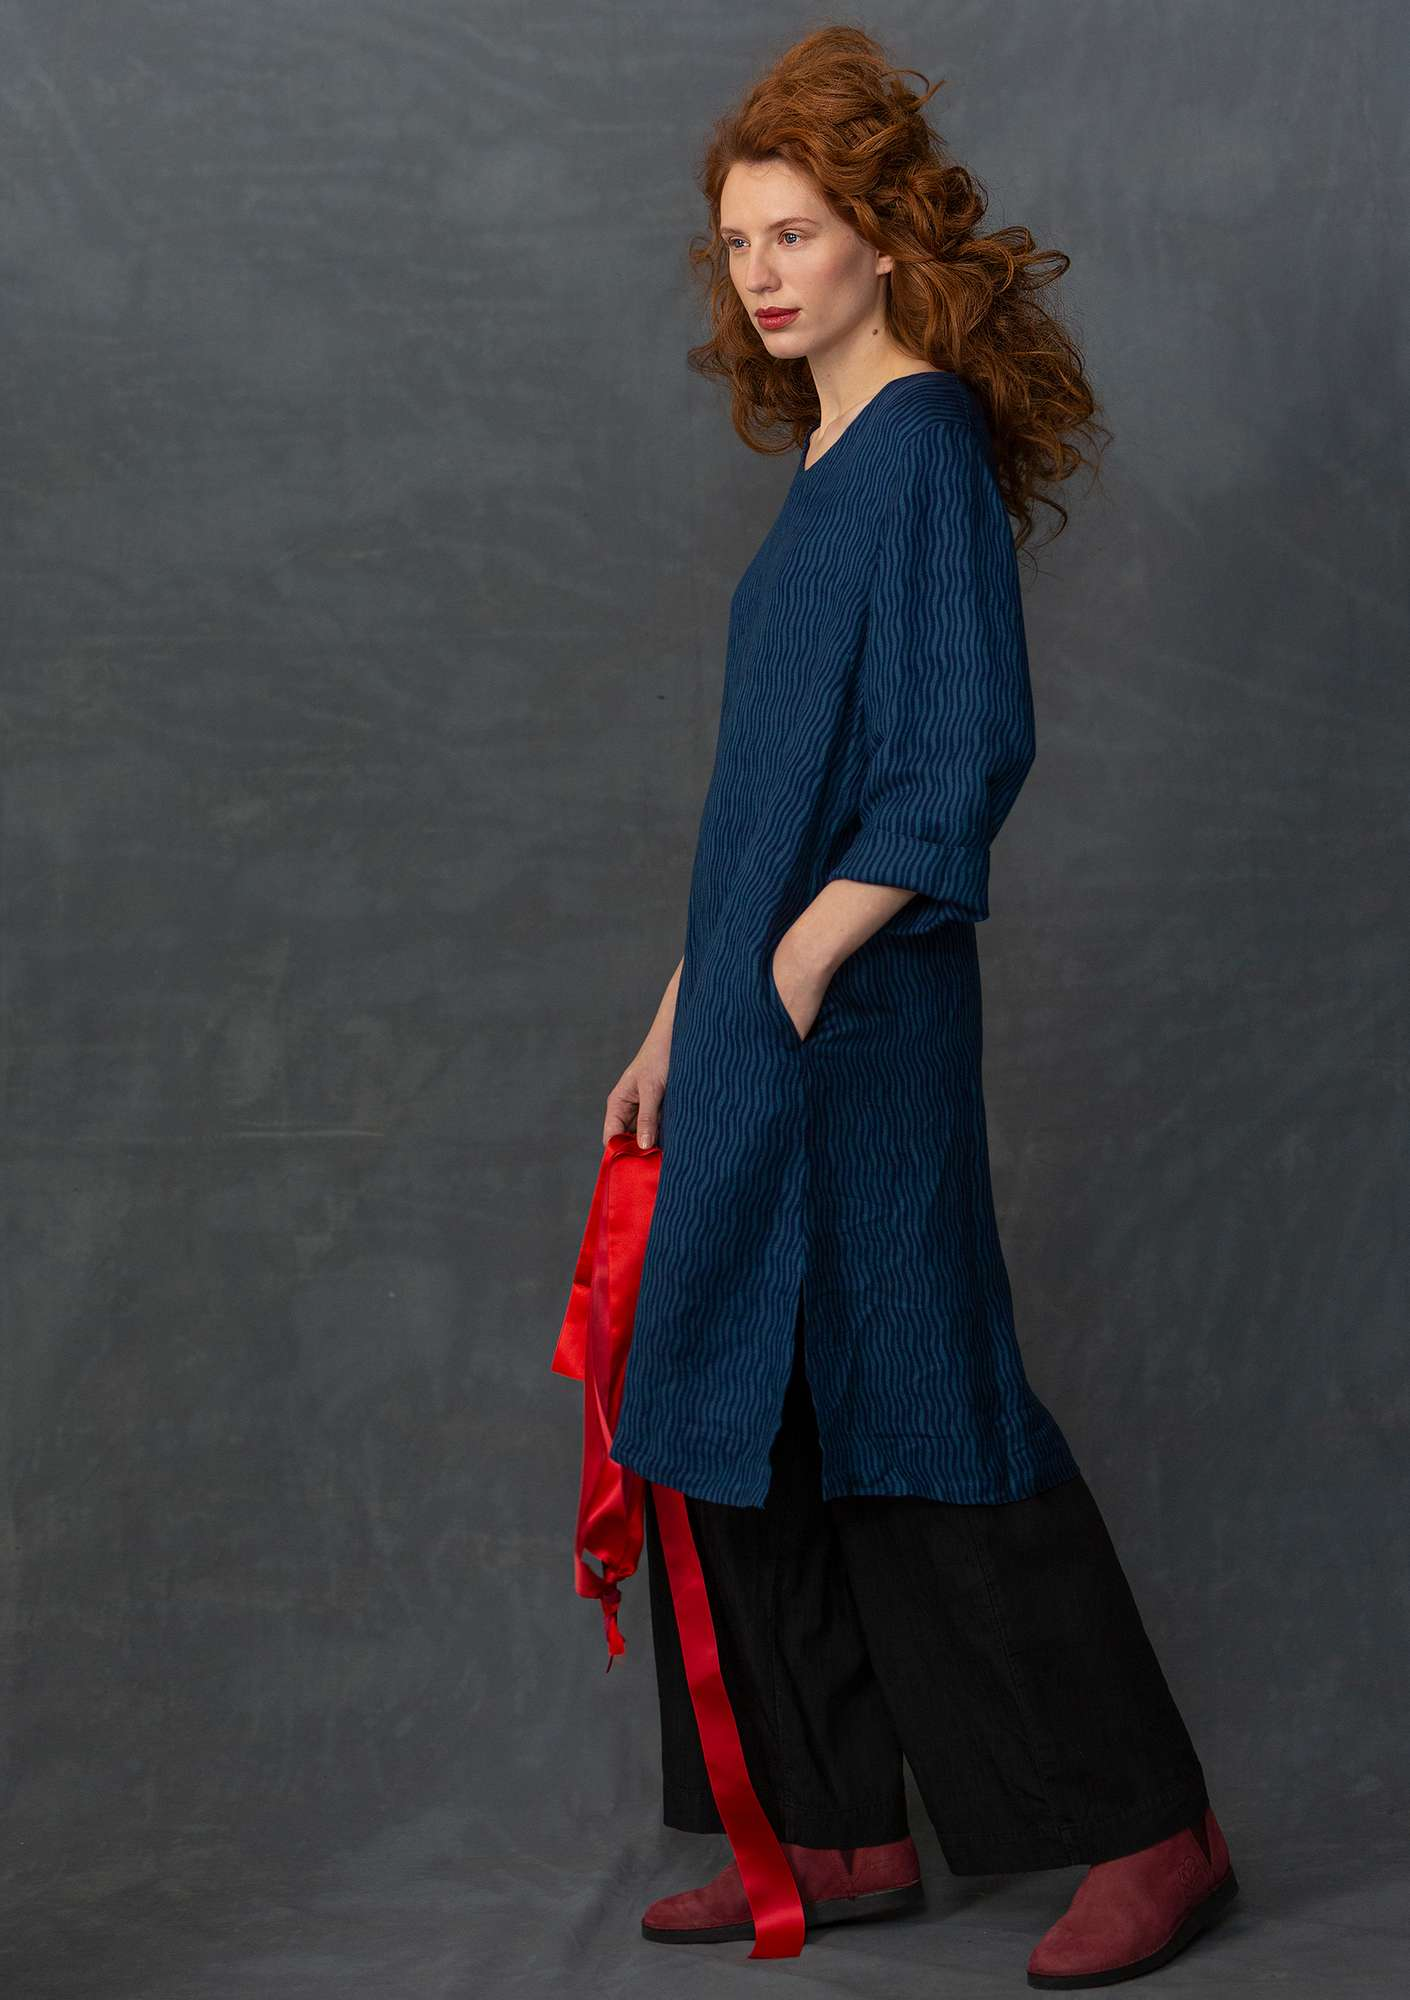 Linen/rayon dress midnight blue